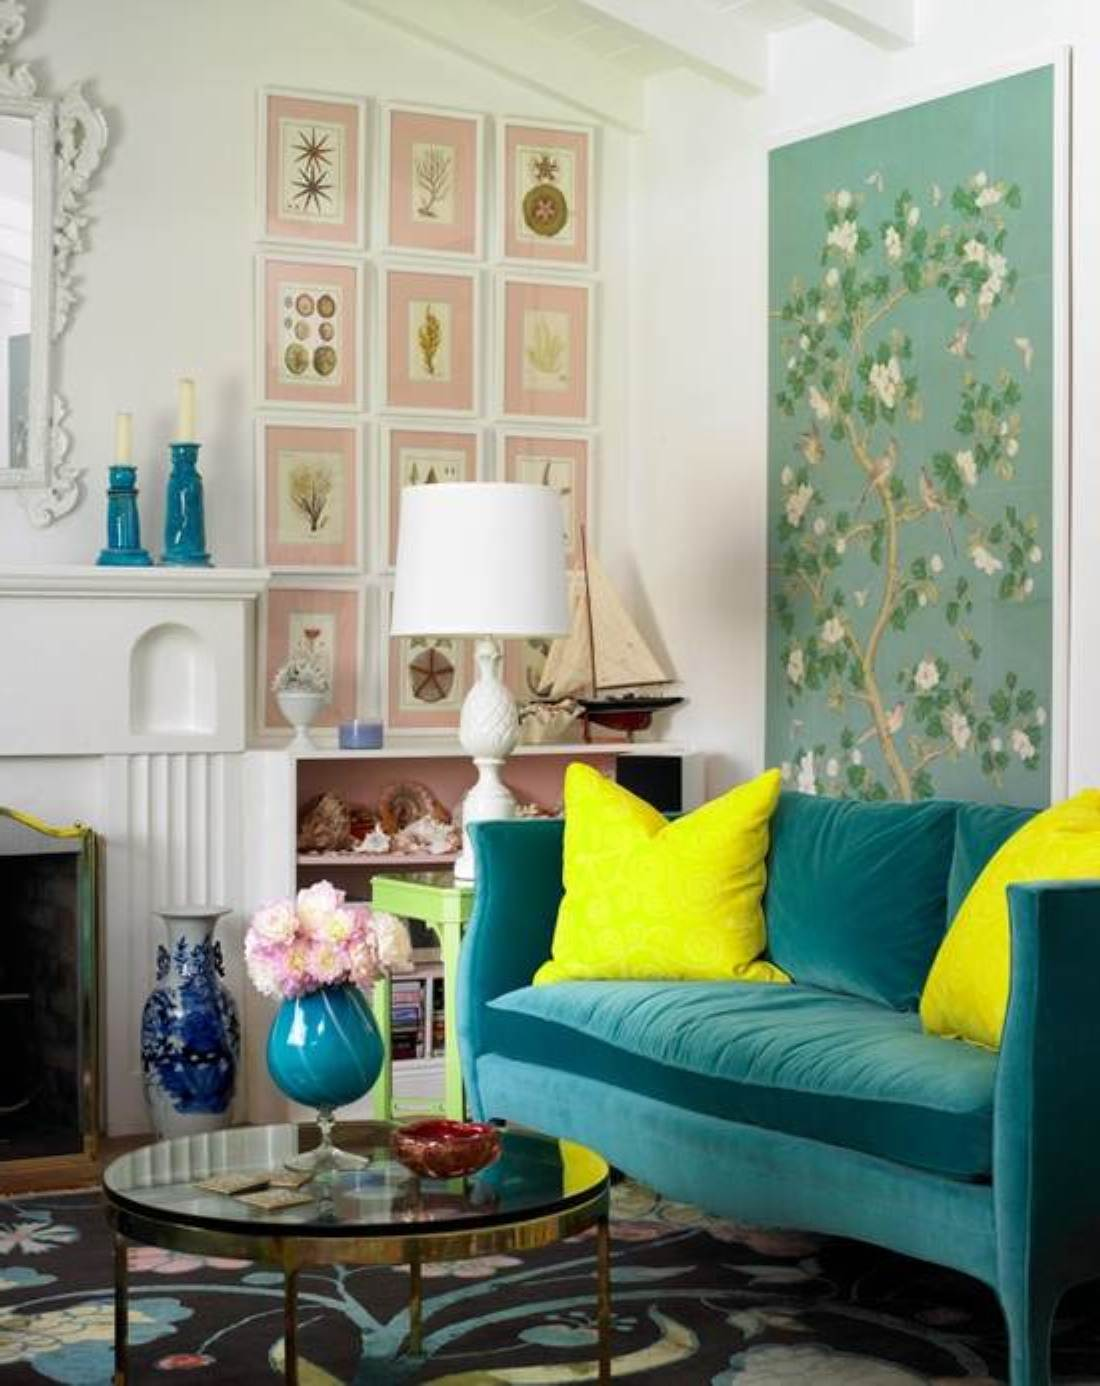 Decorate Living Room With One Window: 30 Amazing Small Spaces Living Room Design Ideas